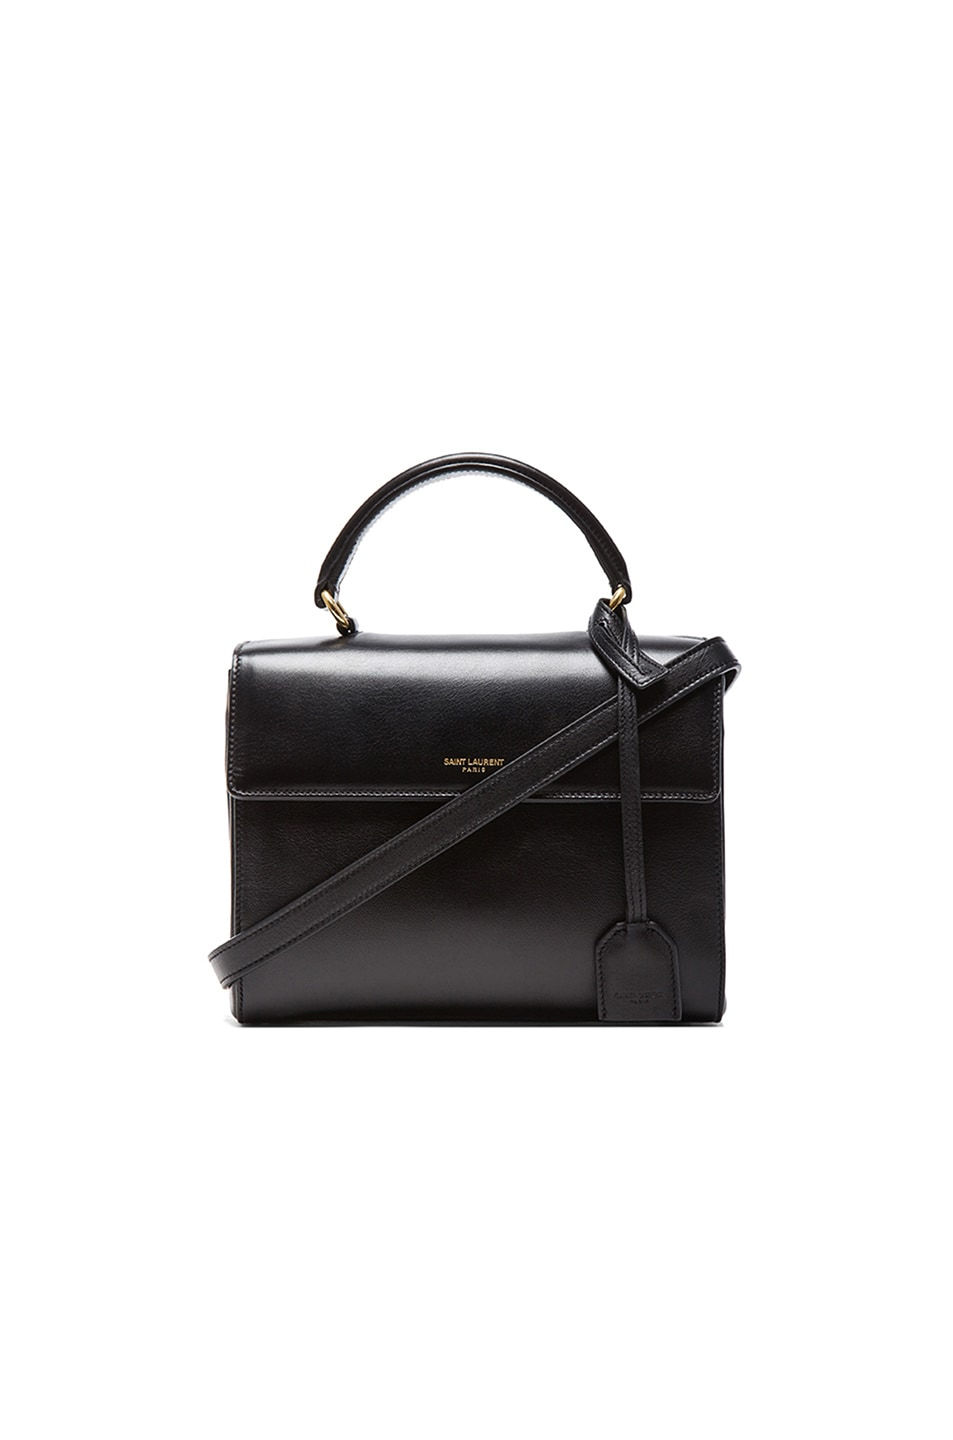 Image 1 of Saint Laurent Small Moujik Bag in Black